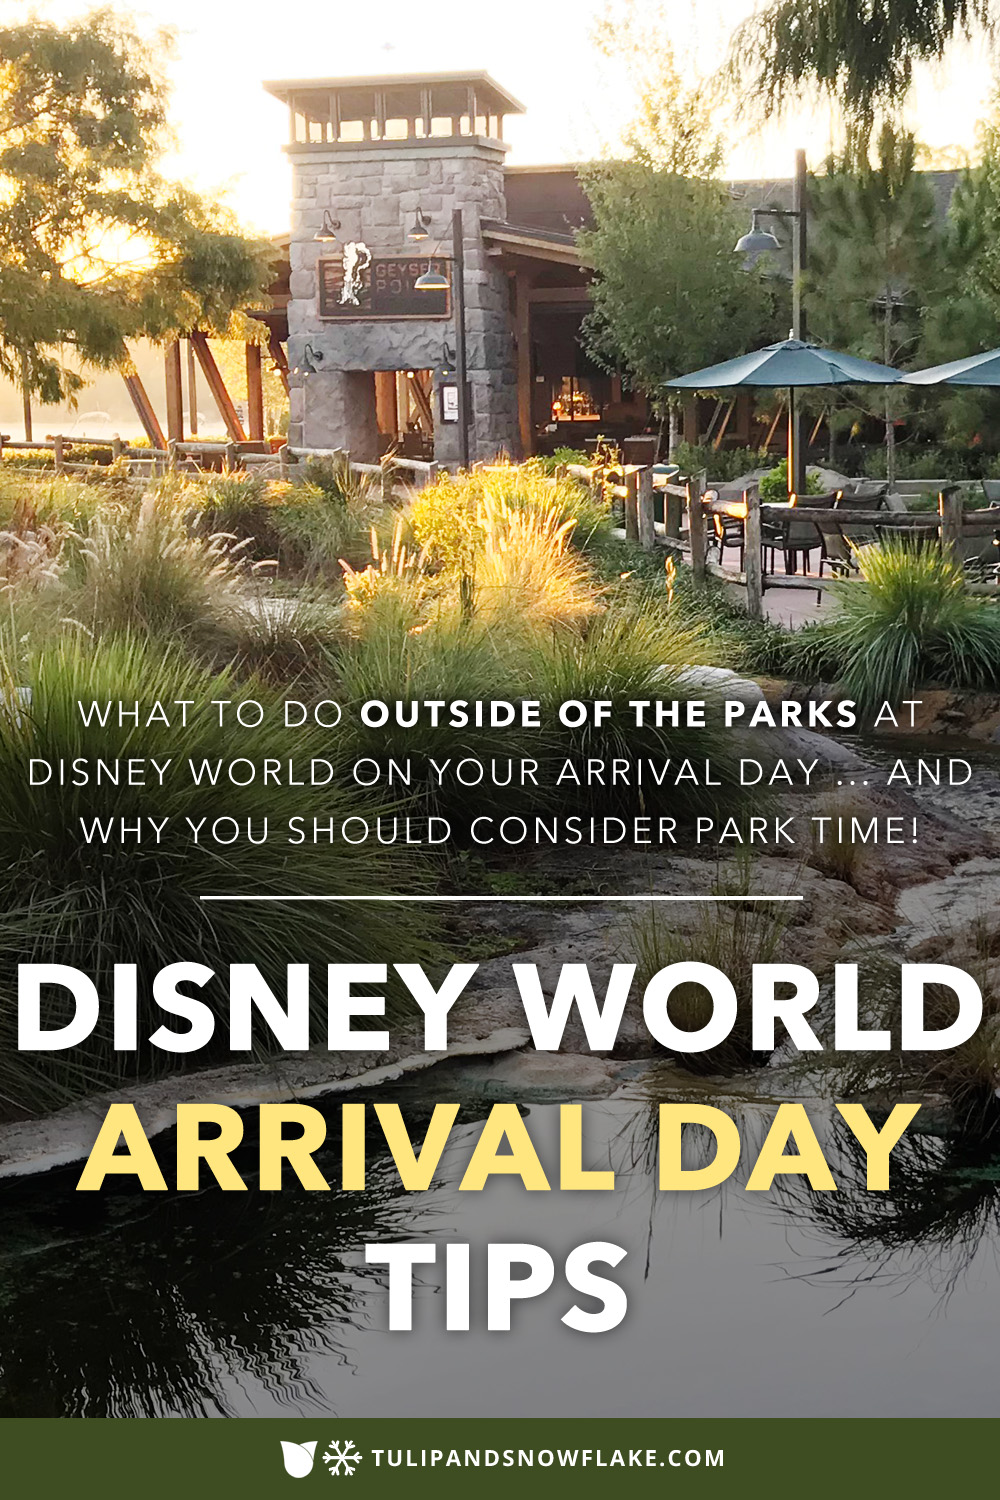 Disney World arrival day tips and recommendations